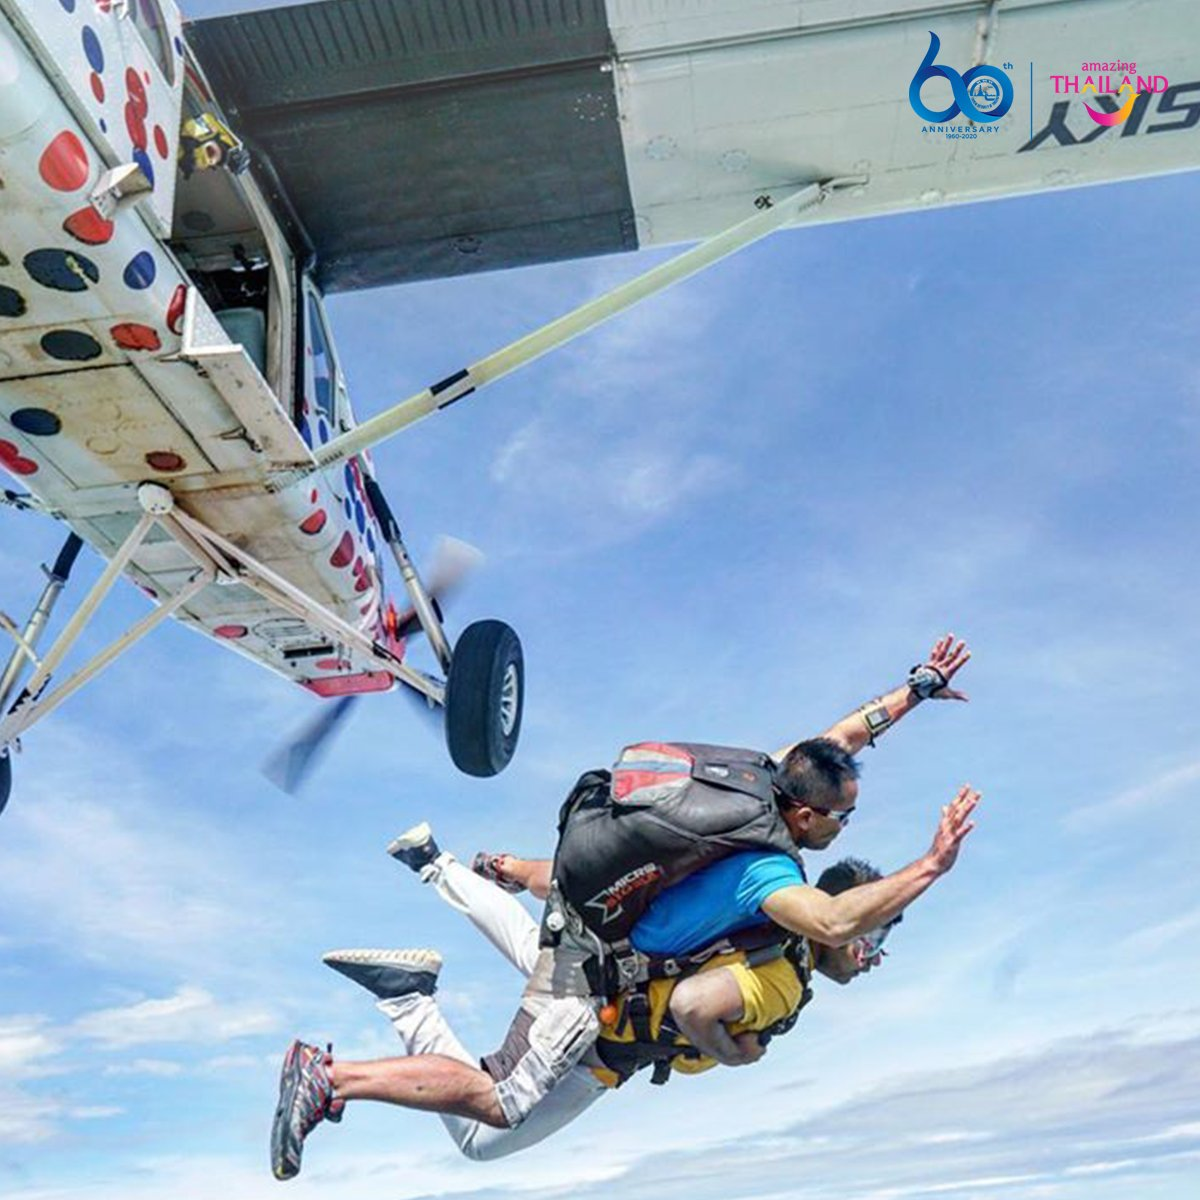 @not_a_solo_traveller was sure to have an adrenaline-inducing rush, tandem diving through the skies over Pattaya #Thailand #AmazingThailand #Pattaya #ThaiTourism #ThaiTravel #TravelGrampic.twitter.com/wBqnFgWdw0